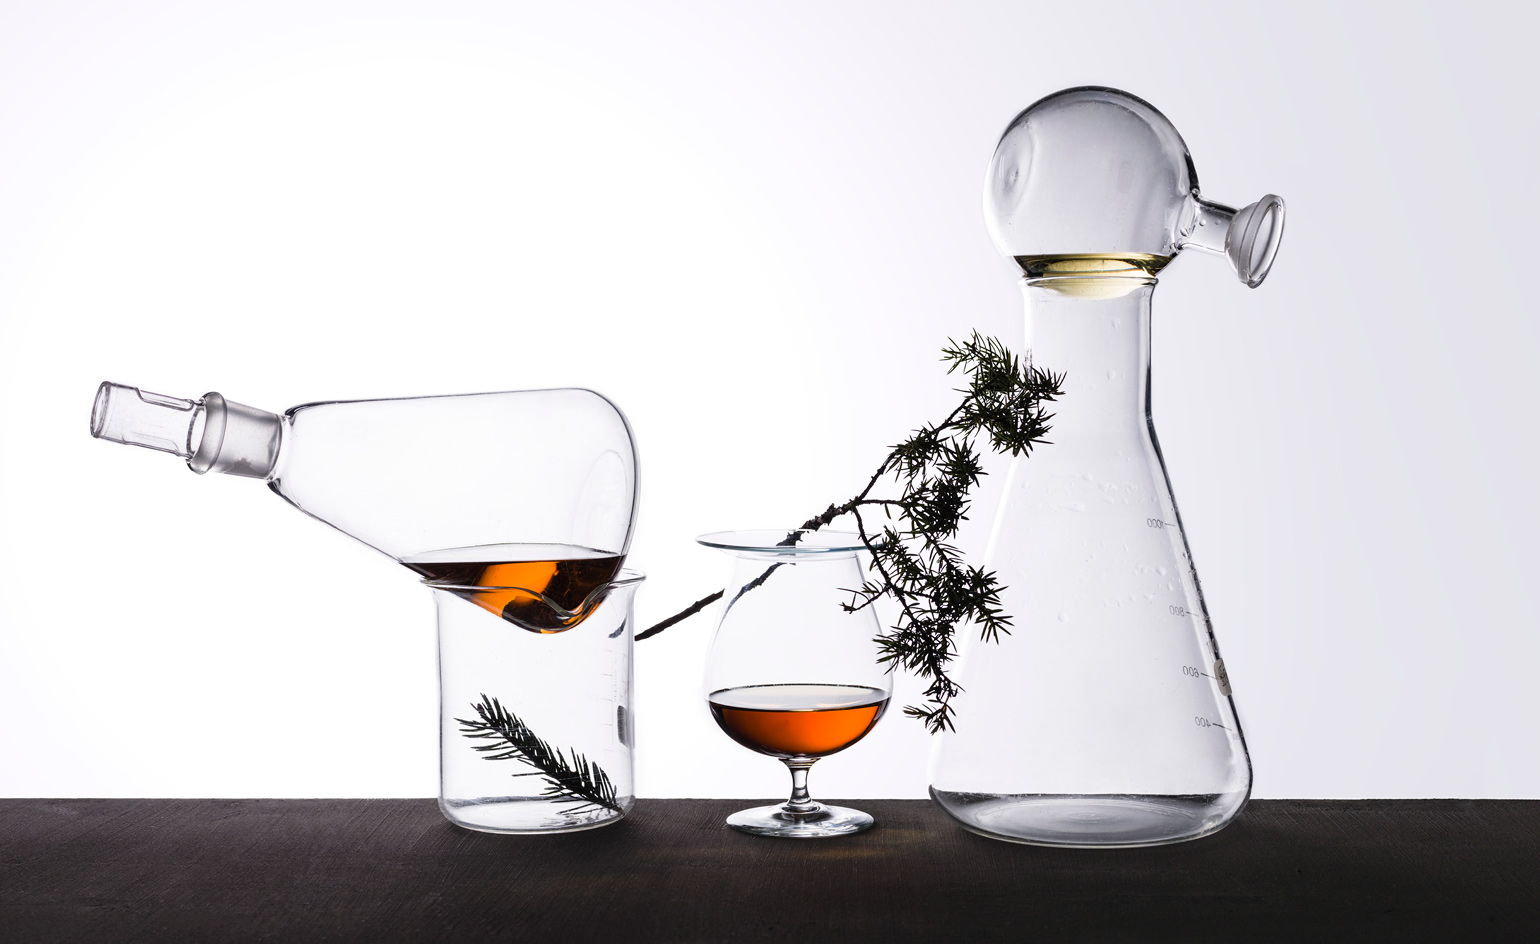 Find the best cocktail set and tools to prepare delicious drinks like a pro